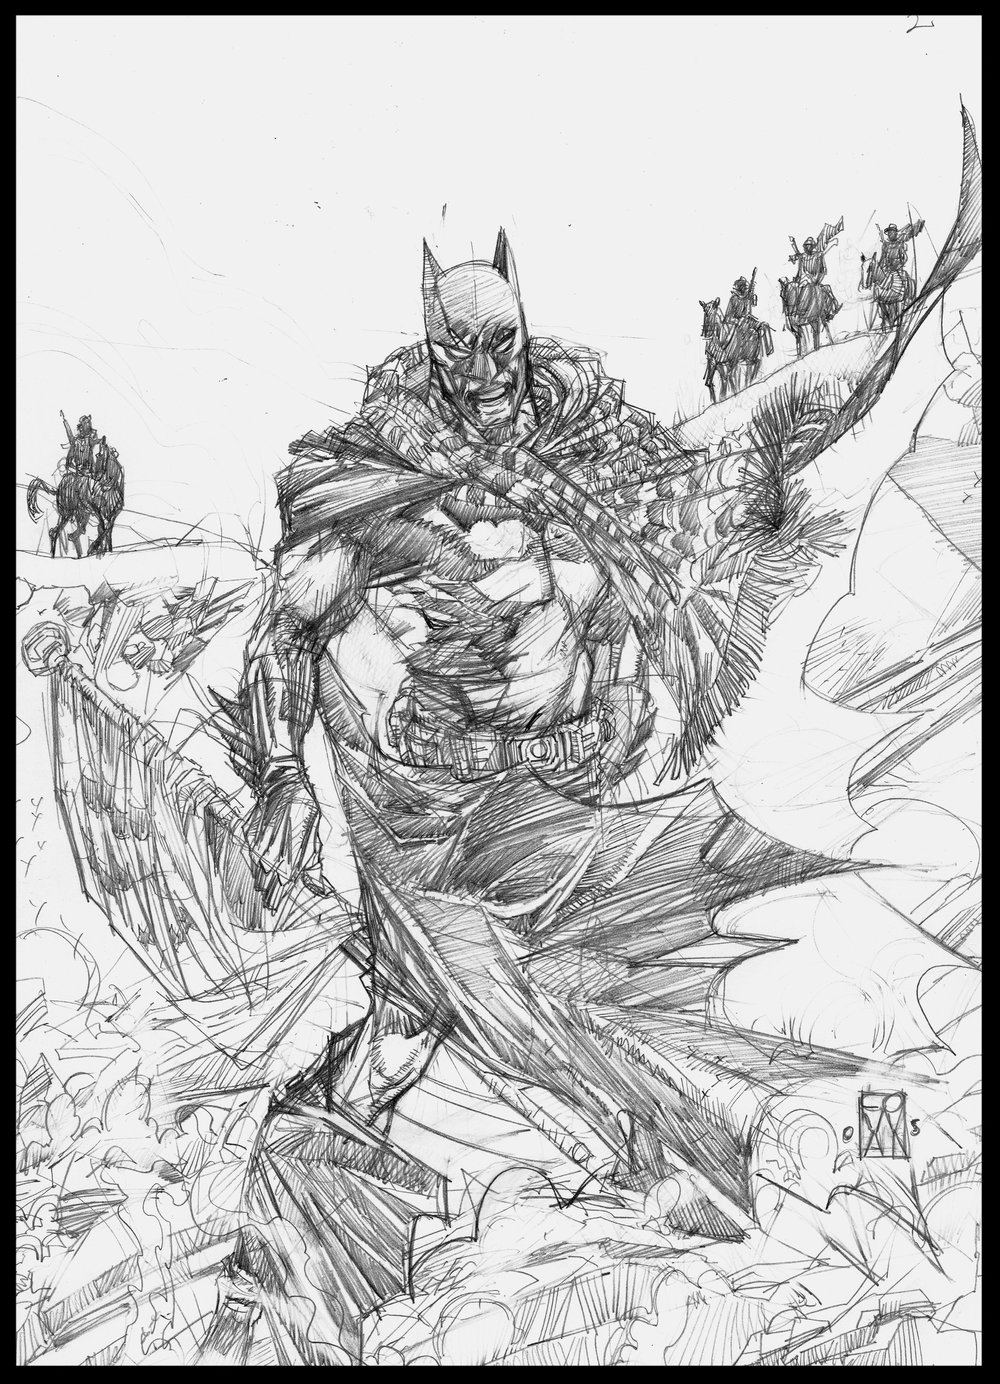 Batman: Ducard's War (unpublished) - Cover (detail) - Pencils